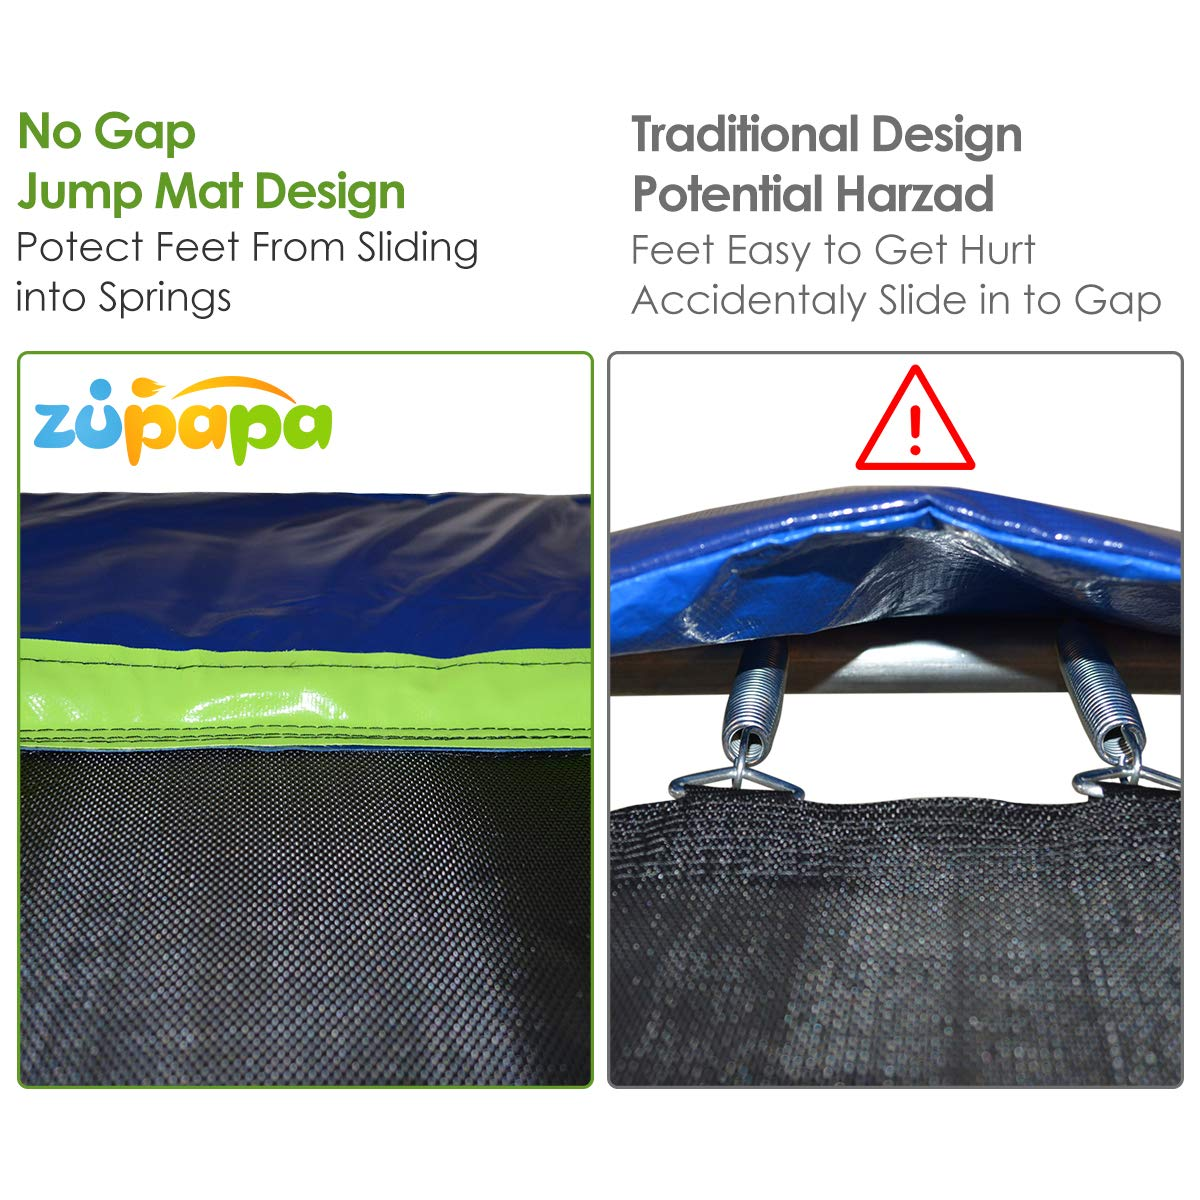 Zupapa Kids Trampoline, TUV Approved Trampoline 10ft, with Safety Enclosure Net, Heavy Duty Indoor Outdoor Round Trampoline for Kids by Zupapa (Image #2)